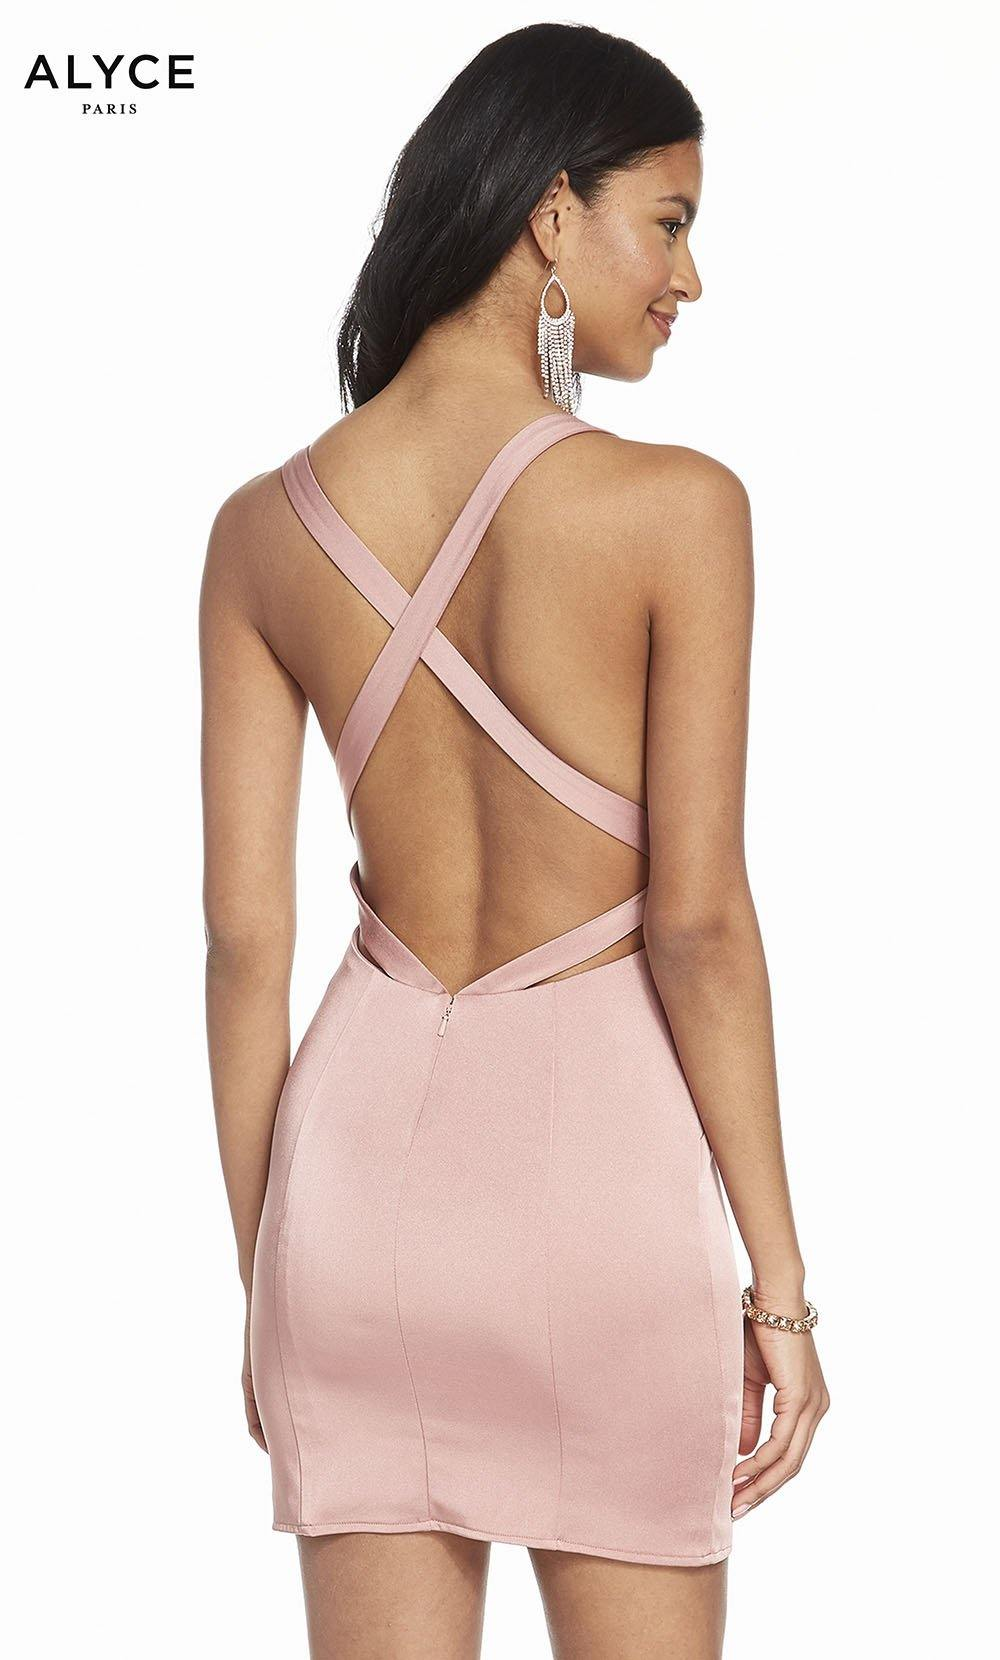 Alyce 4099 short stretch crepe bodycon dress with a strappy back